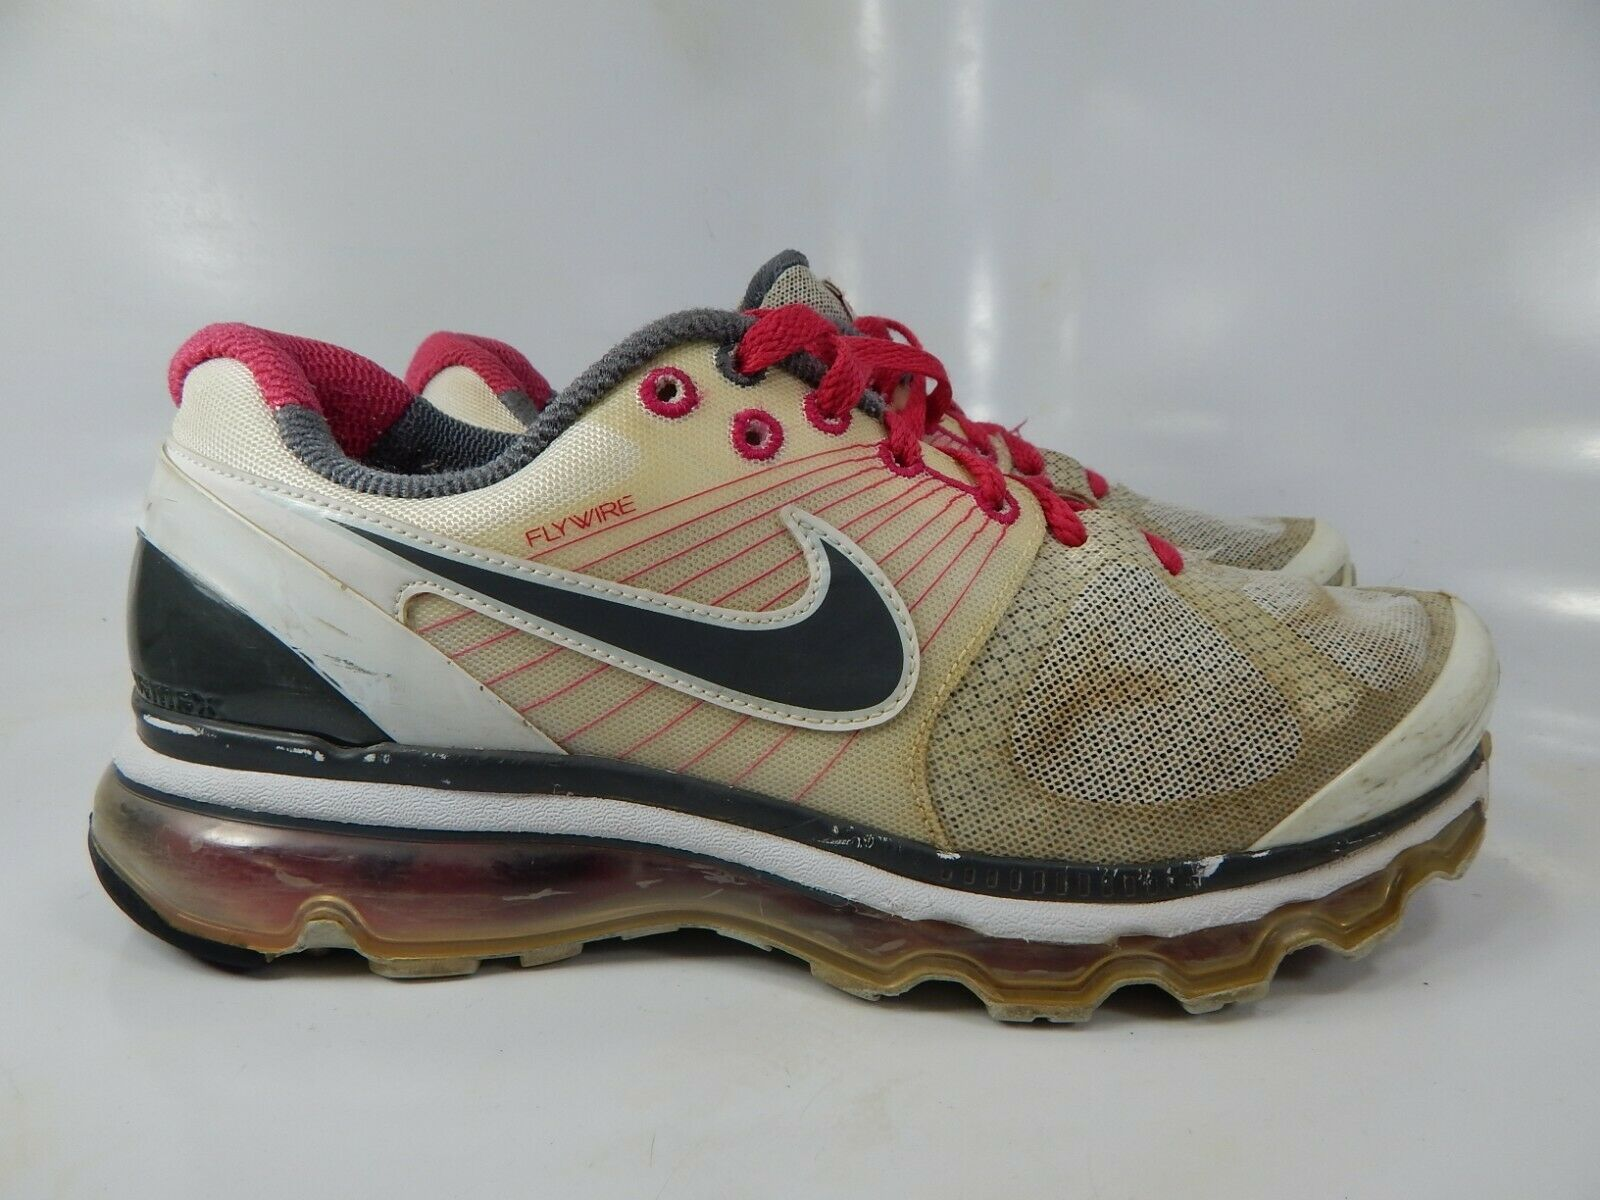 Nike Air Max 2010 Taille US 8.5 M(B) EU 40 and 45 similar items